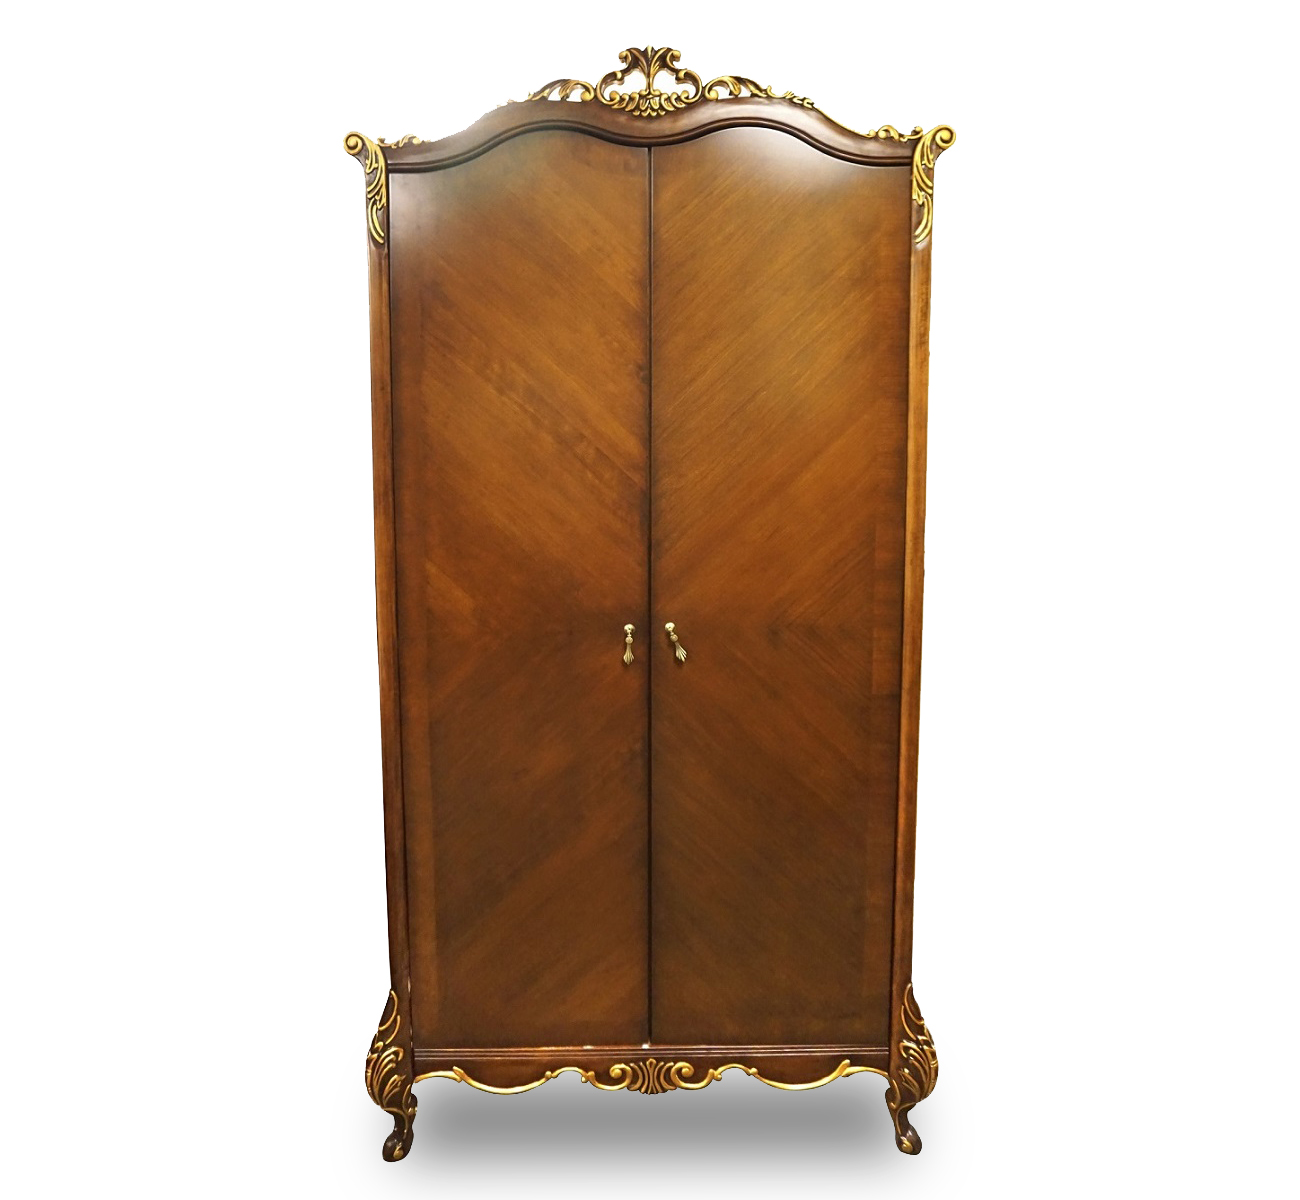 001 Armoire, Accentuation ArmoiresBrooklyn, New York, Accentuations Brand, Furniture by ABD